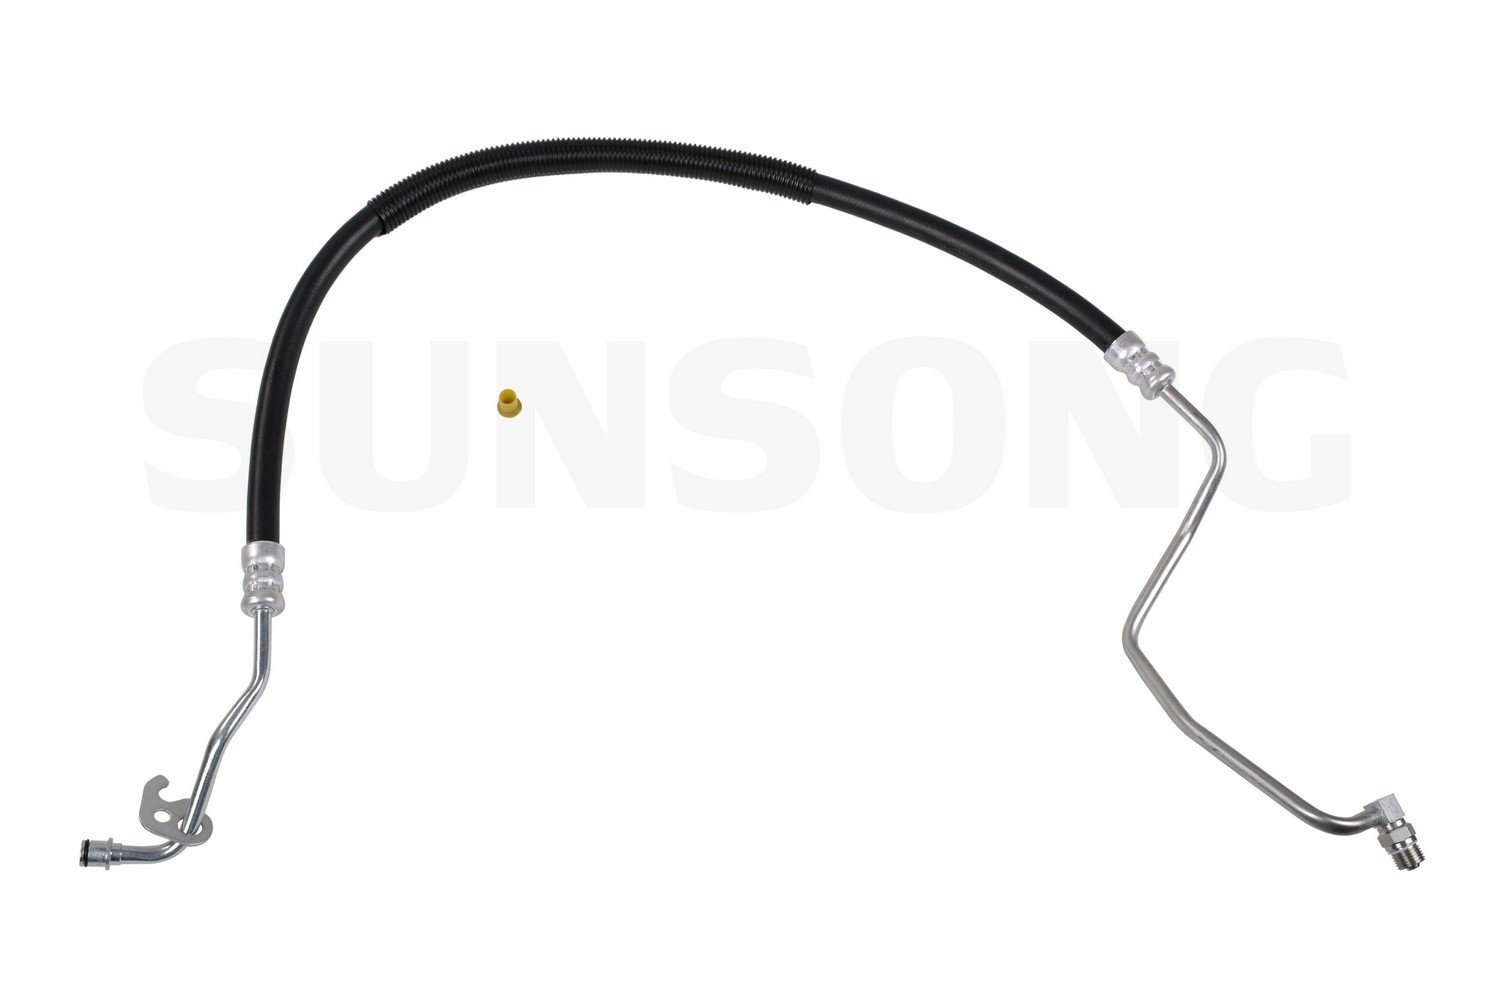 Sunsong 3402557 Power Steering Pressure Line Hose Assembly